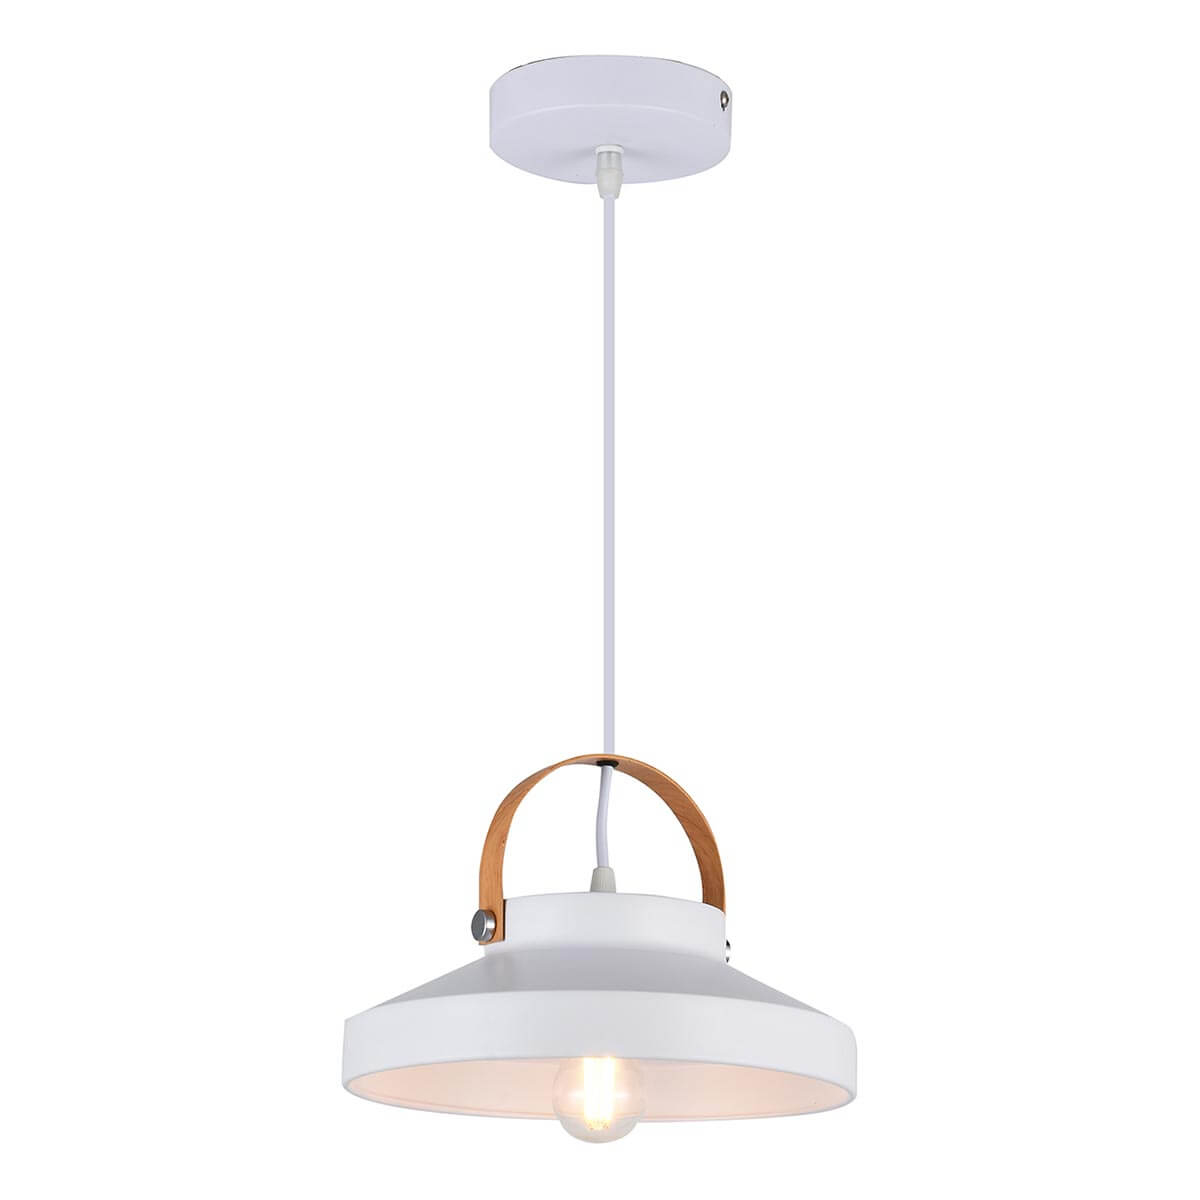 Светильник Toplight TL1225H-01WH Wendi настенный светильник toplight tl9040y 01wh